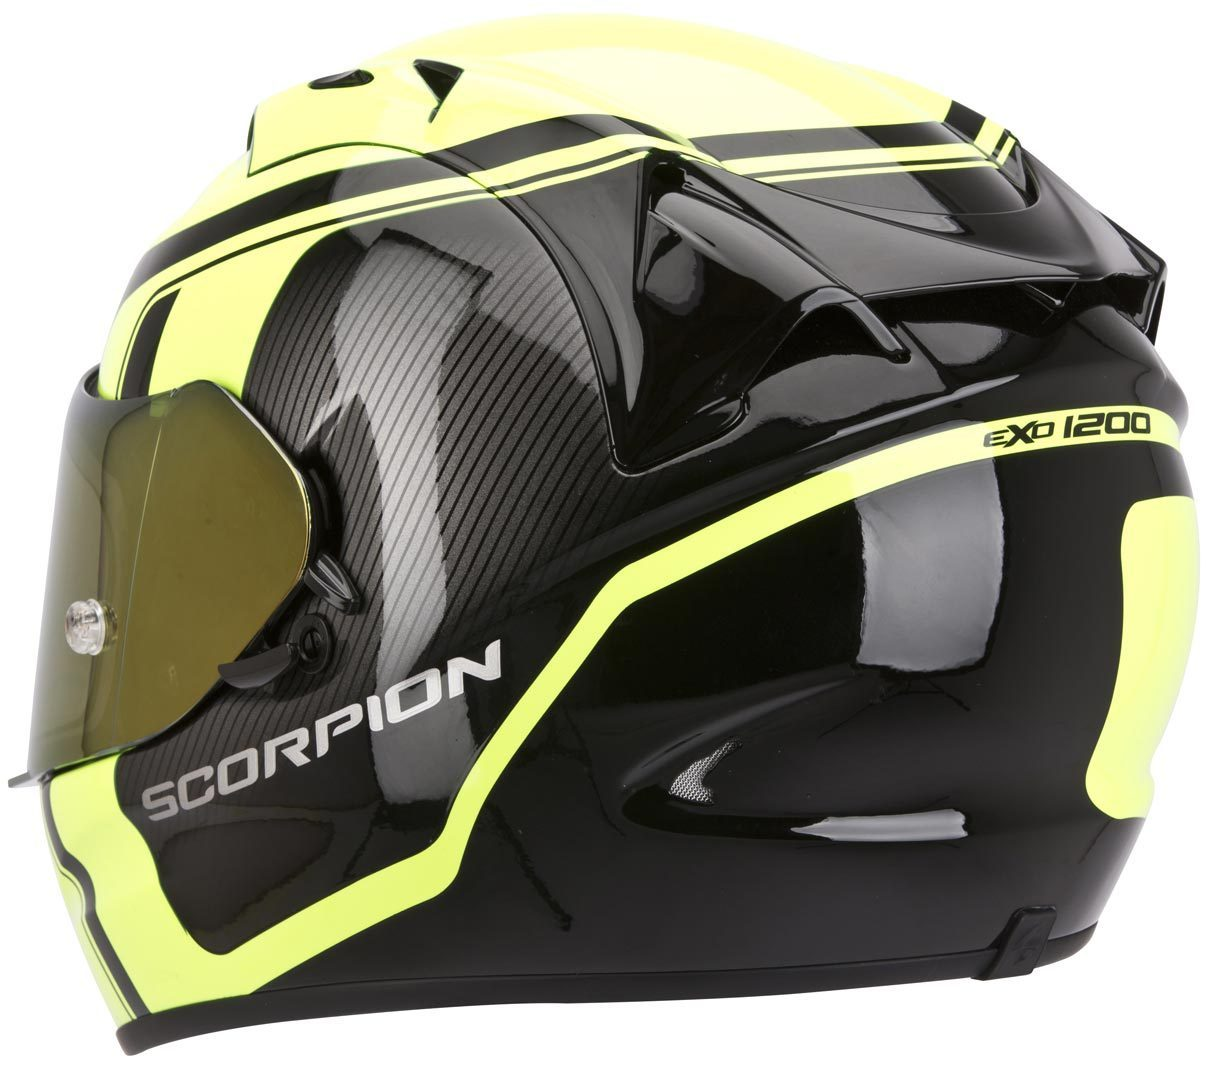 scorpion exo 1200 air stream tour helmet buy cheap fc moto. Black Bedroom Furniture Sets. Home Design Ideas